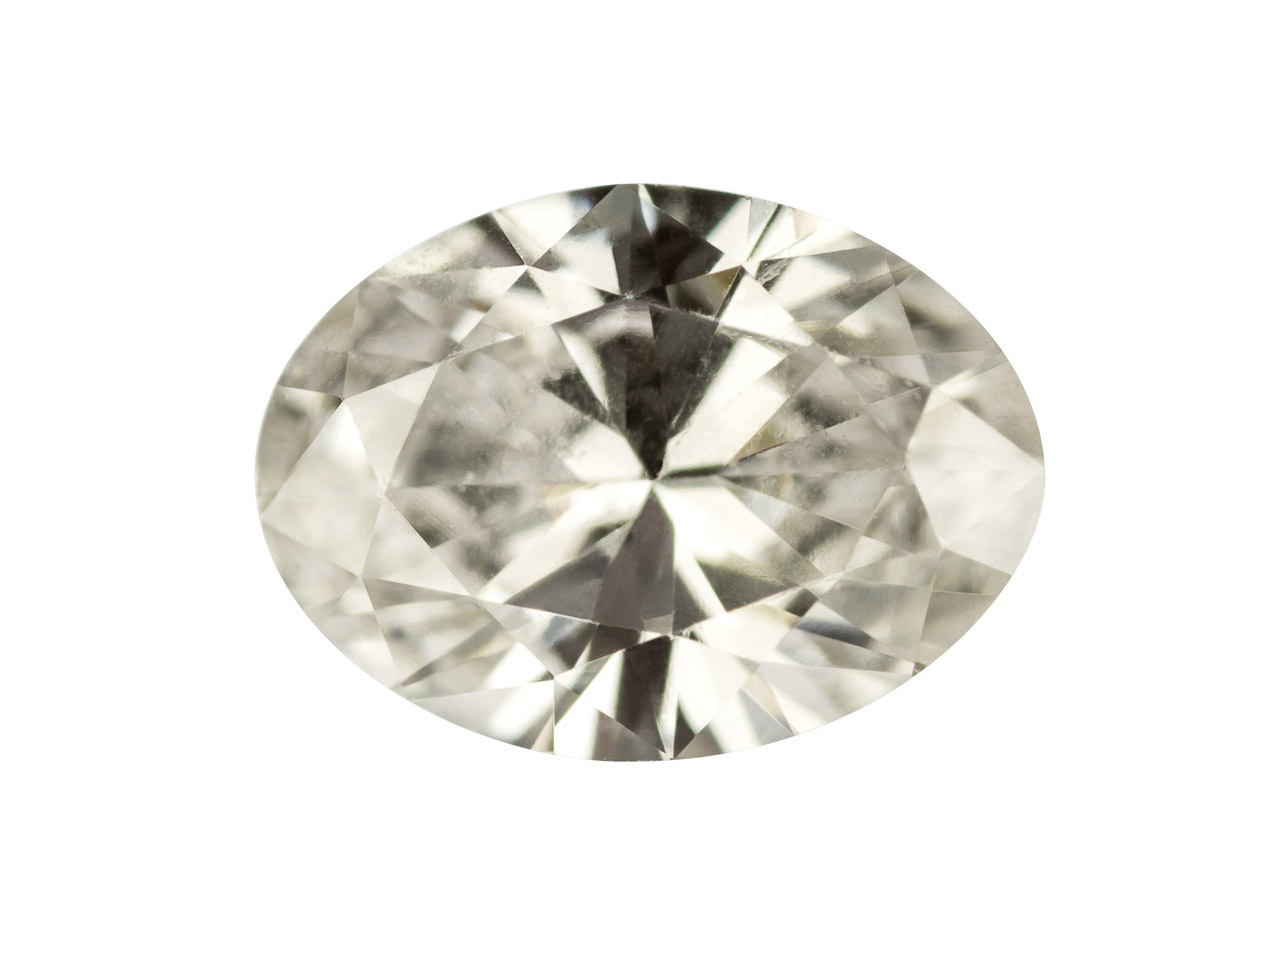 Diamond, Oval, H/si, 10pt/3x2mm